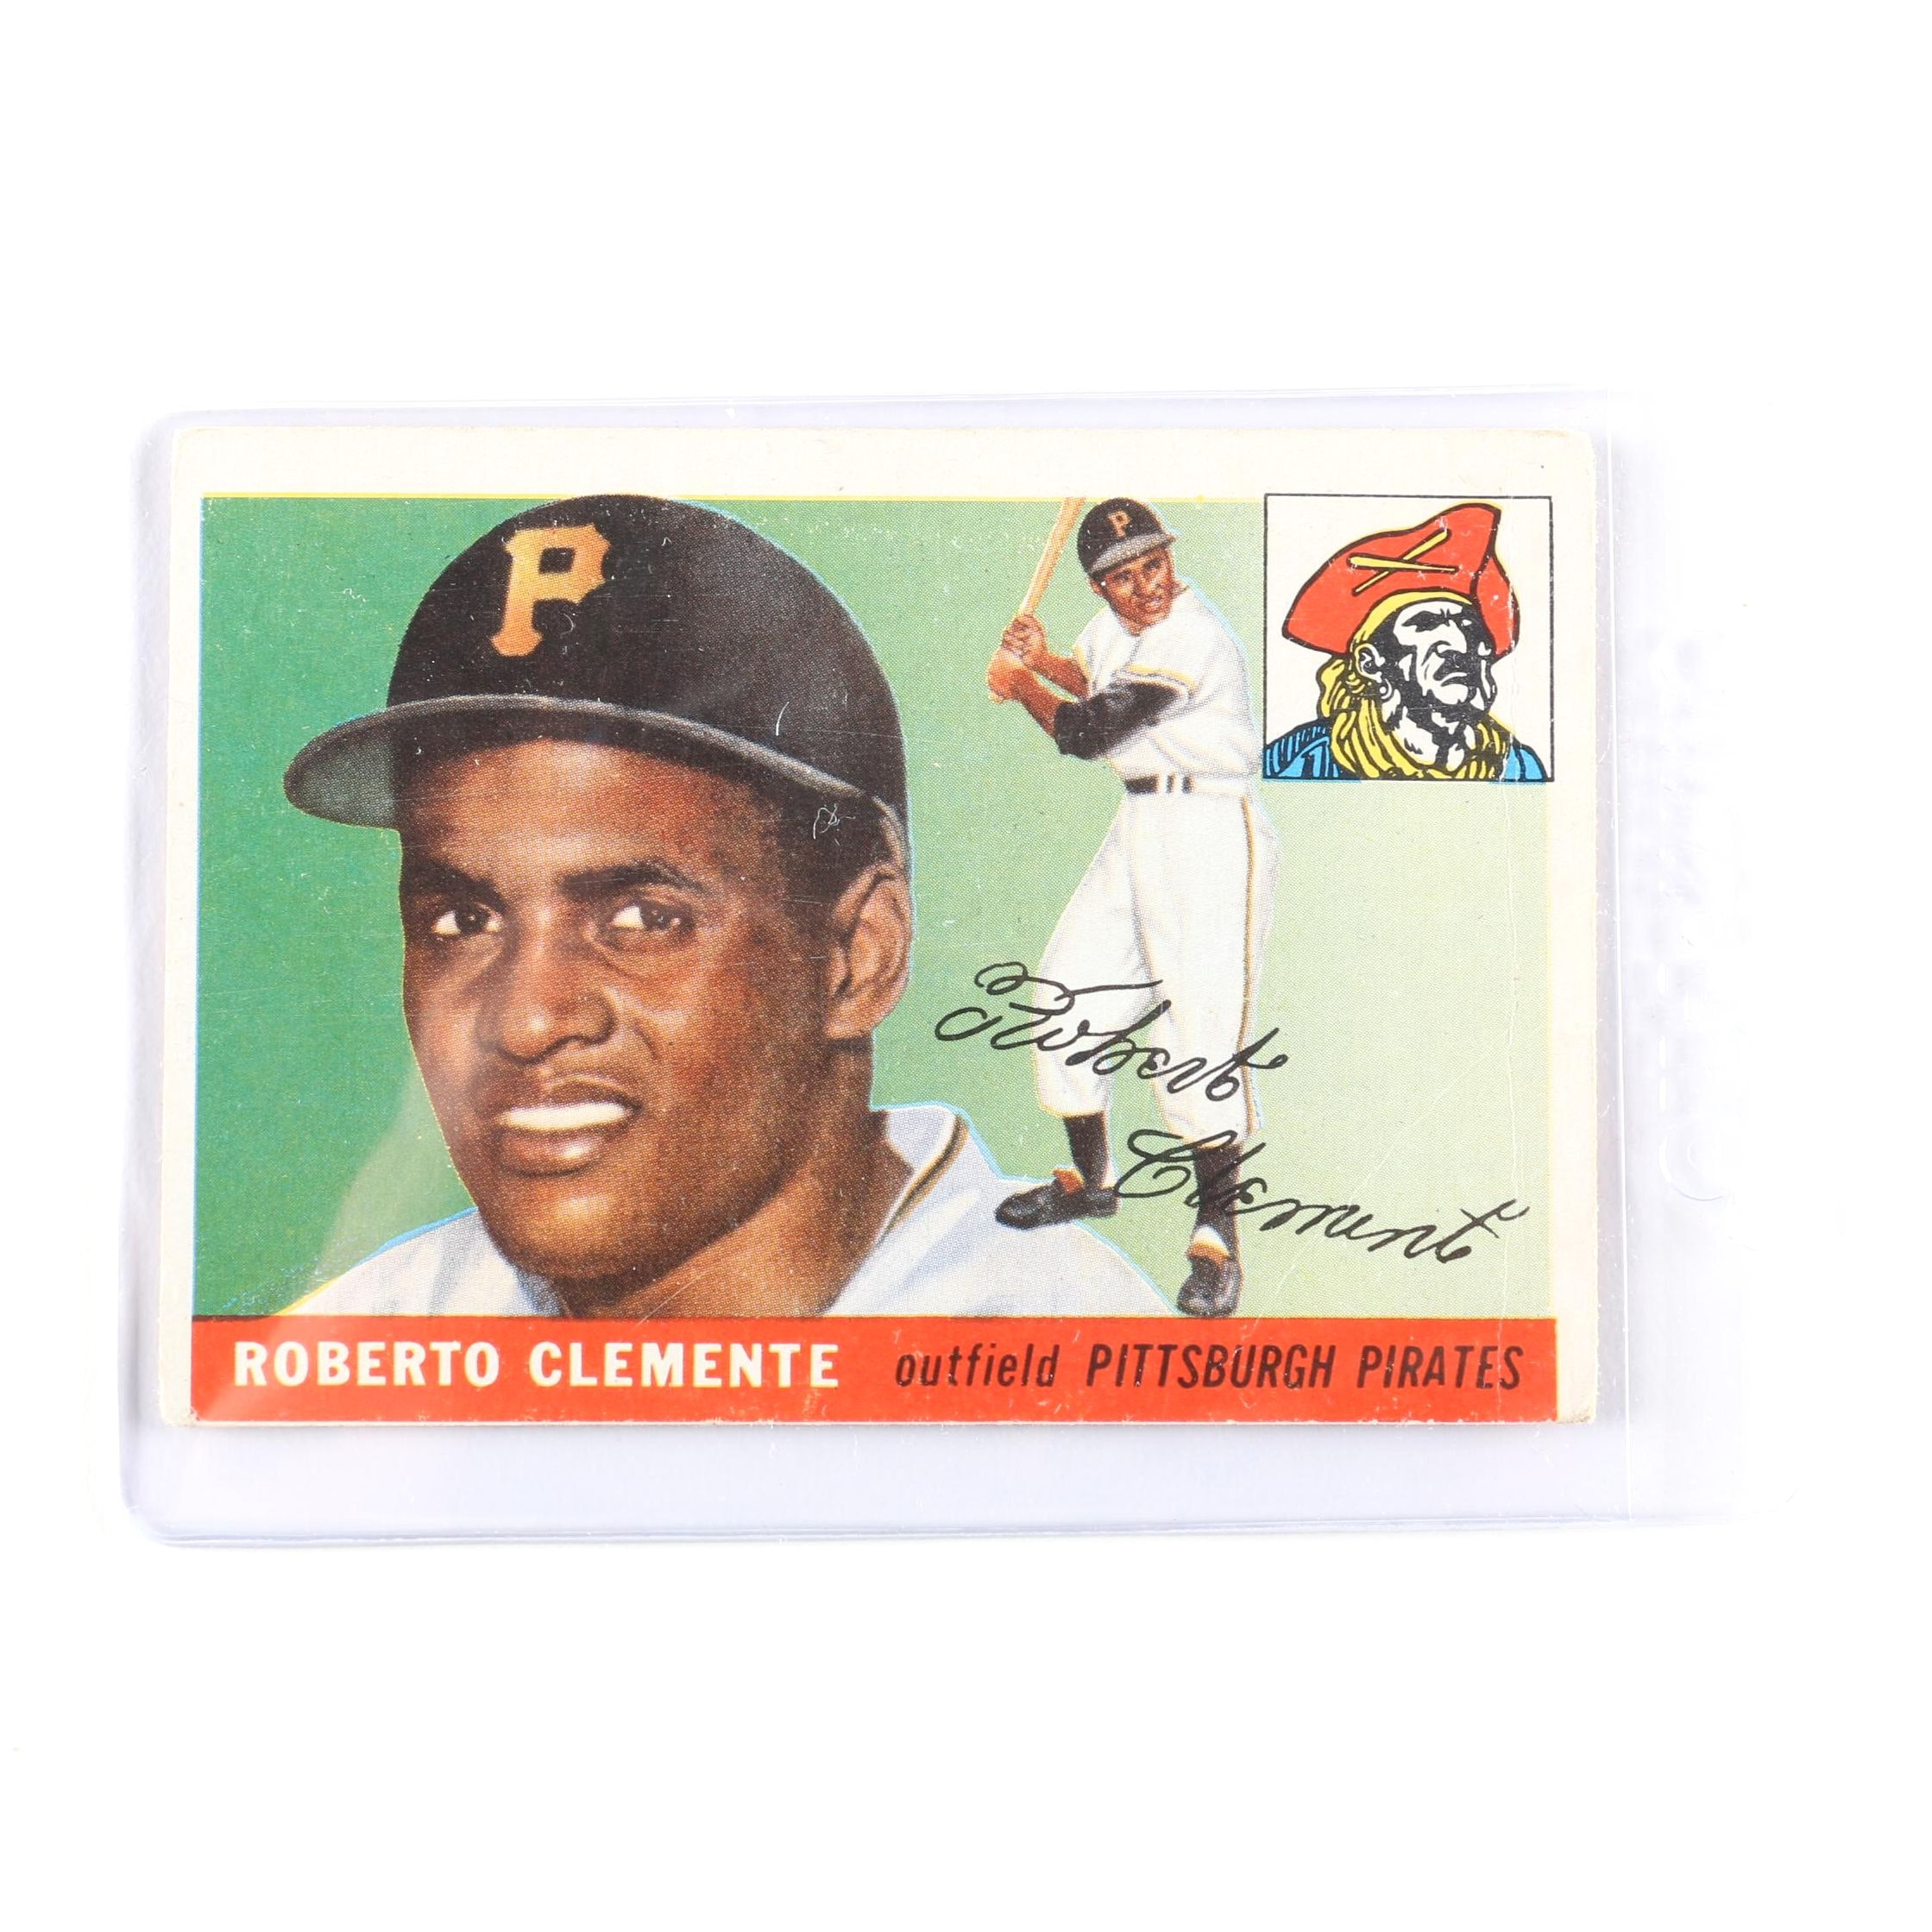 1955 Topps Roberto Clemente #164 Rookie Card